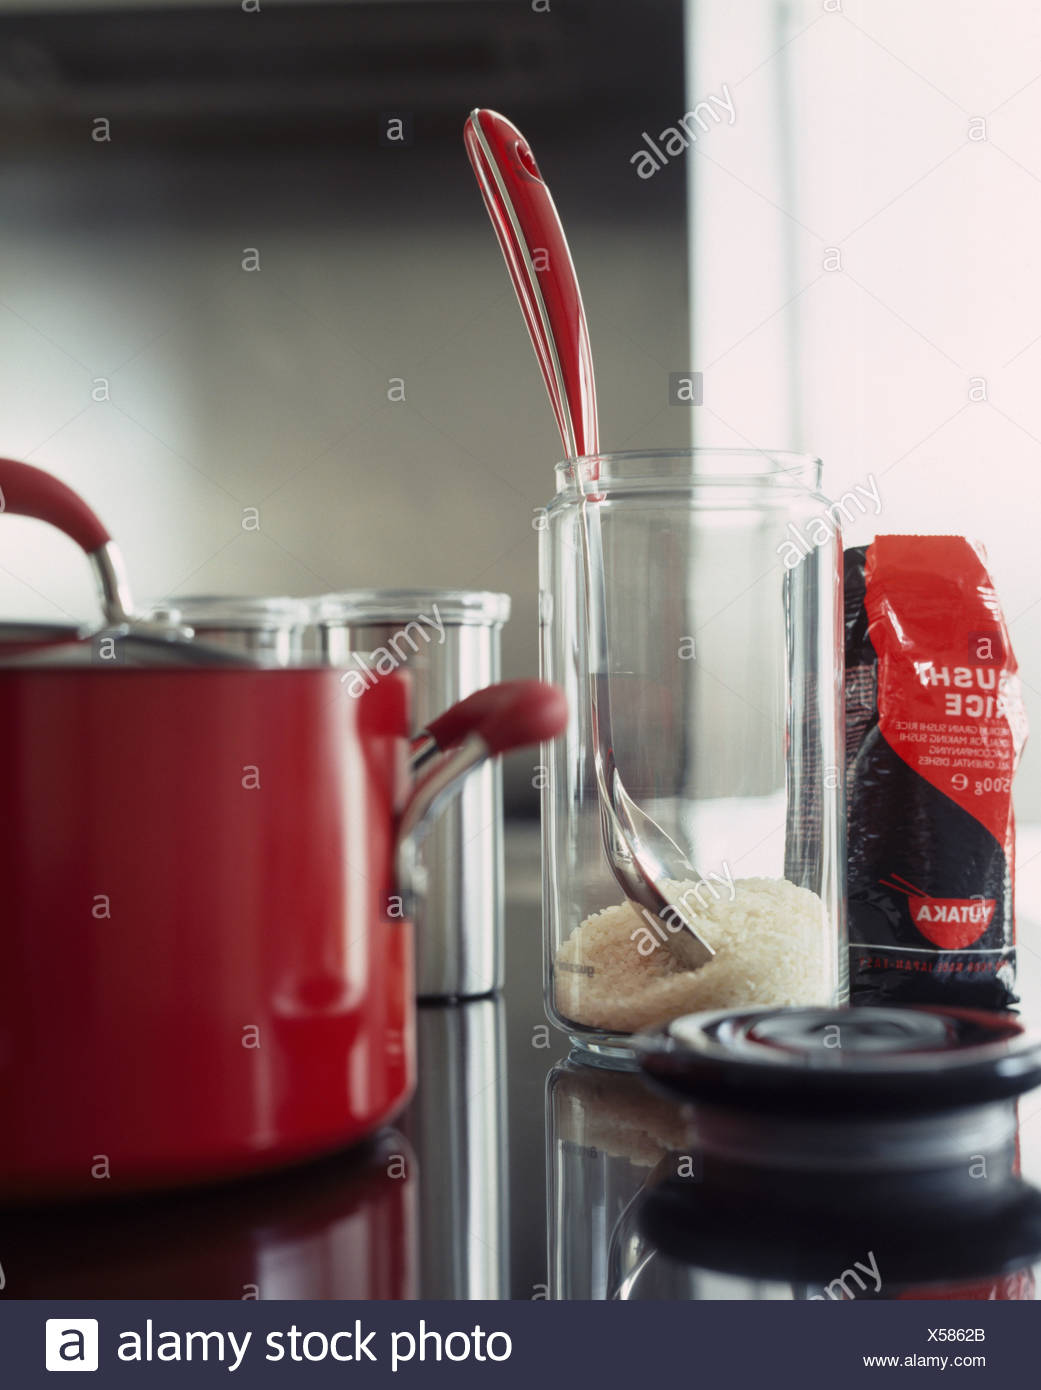 Close Up Of Red Enamel Kettle With Glass Storage Jar